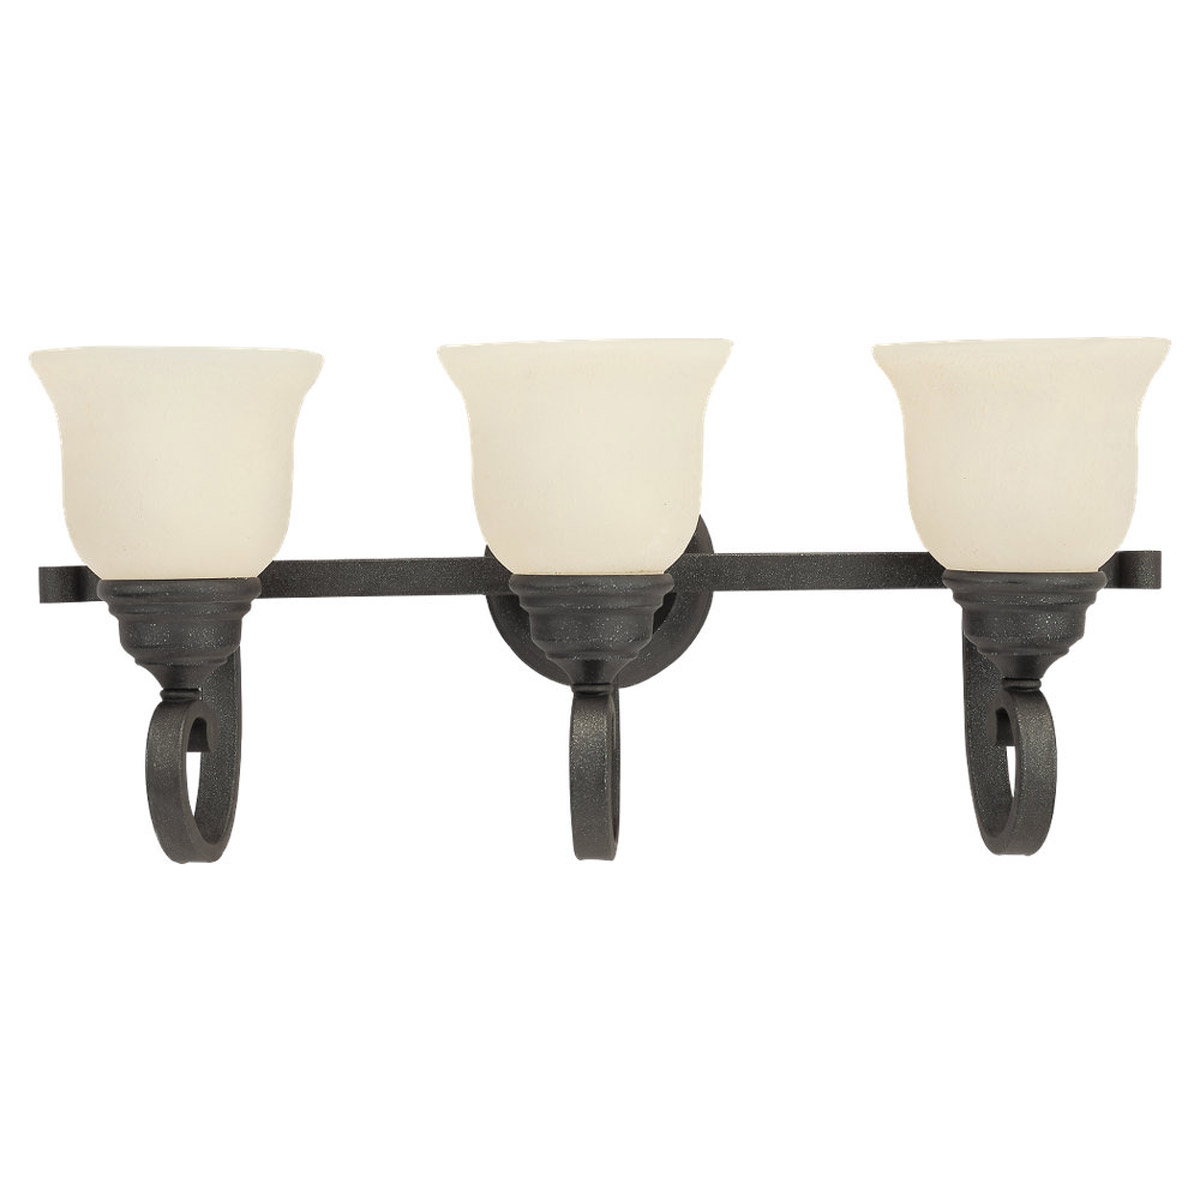 Sea Gull Lighting Serenity 3 Light Bath Vanity in Weathered Iron 44191-07